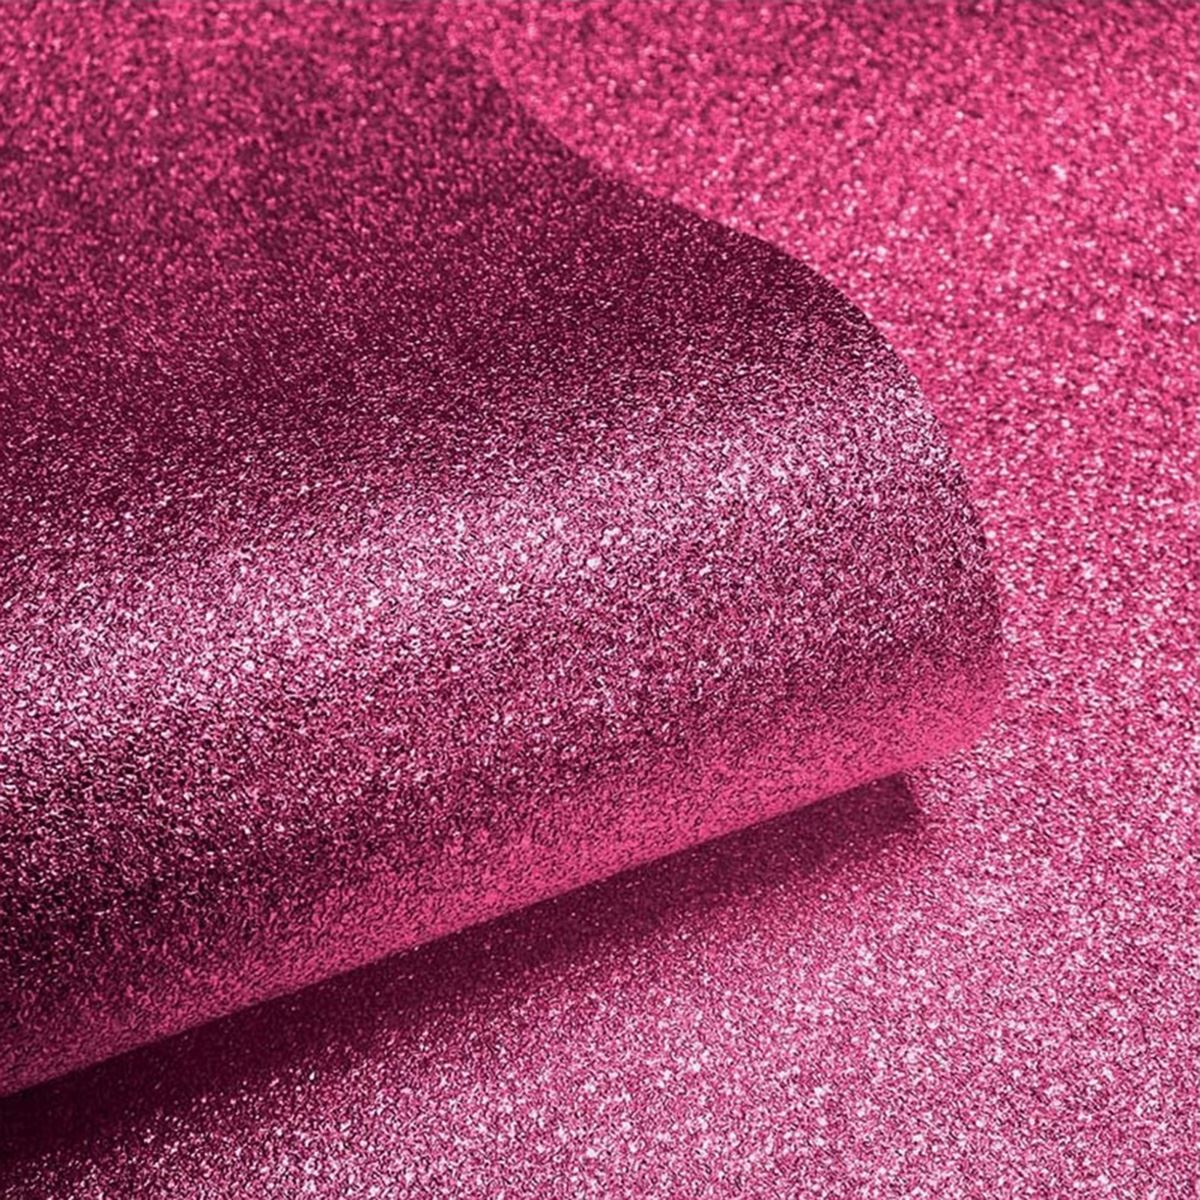 Details about MURIVA SPARKLE GLITTER WALLPAPER COLOURS AVAILABLE: PINK GOLD  BLACK SILVER TEAL